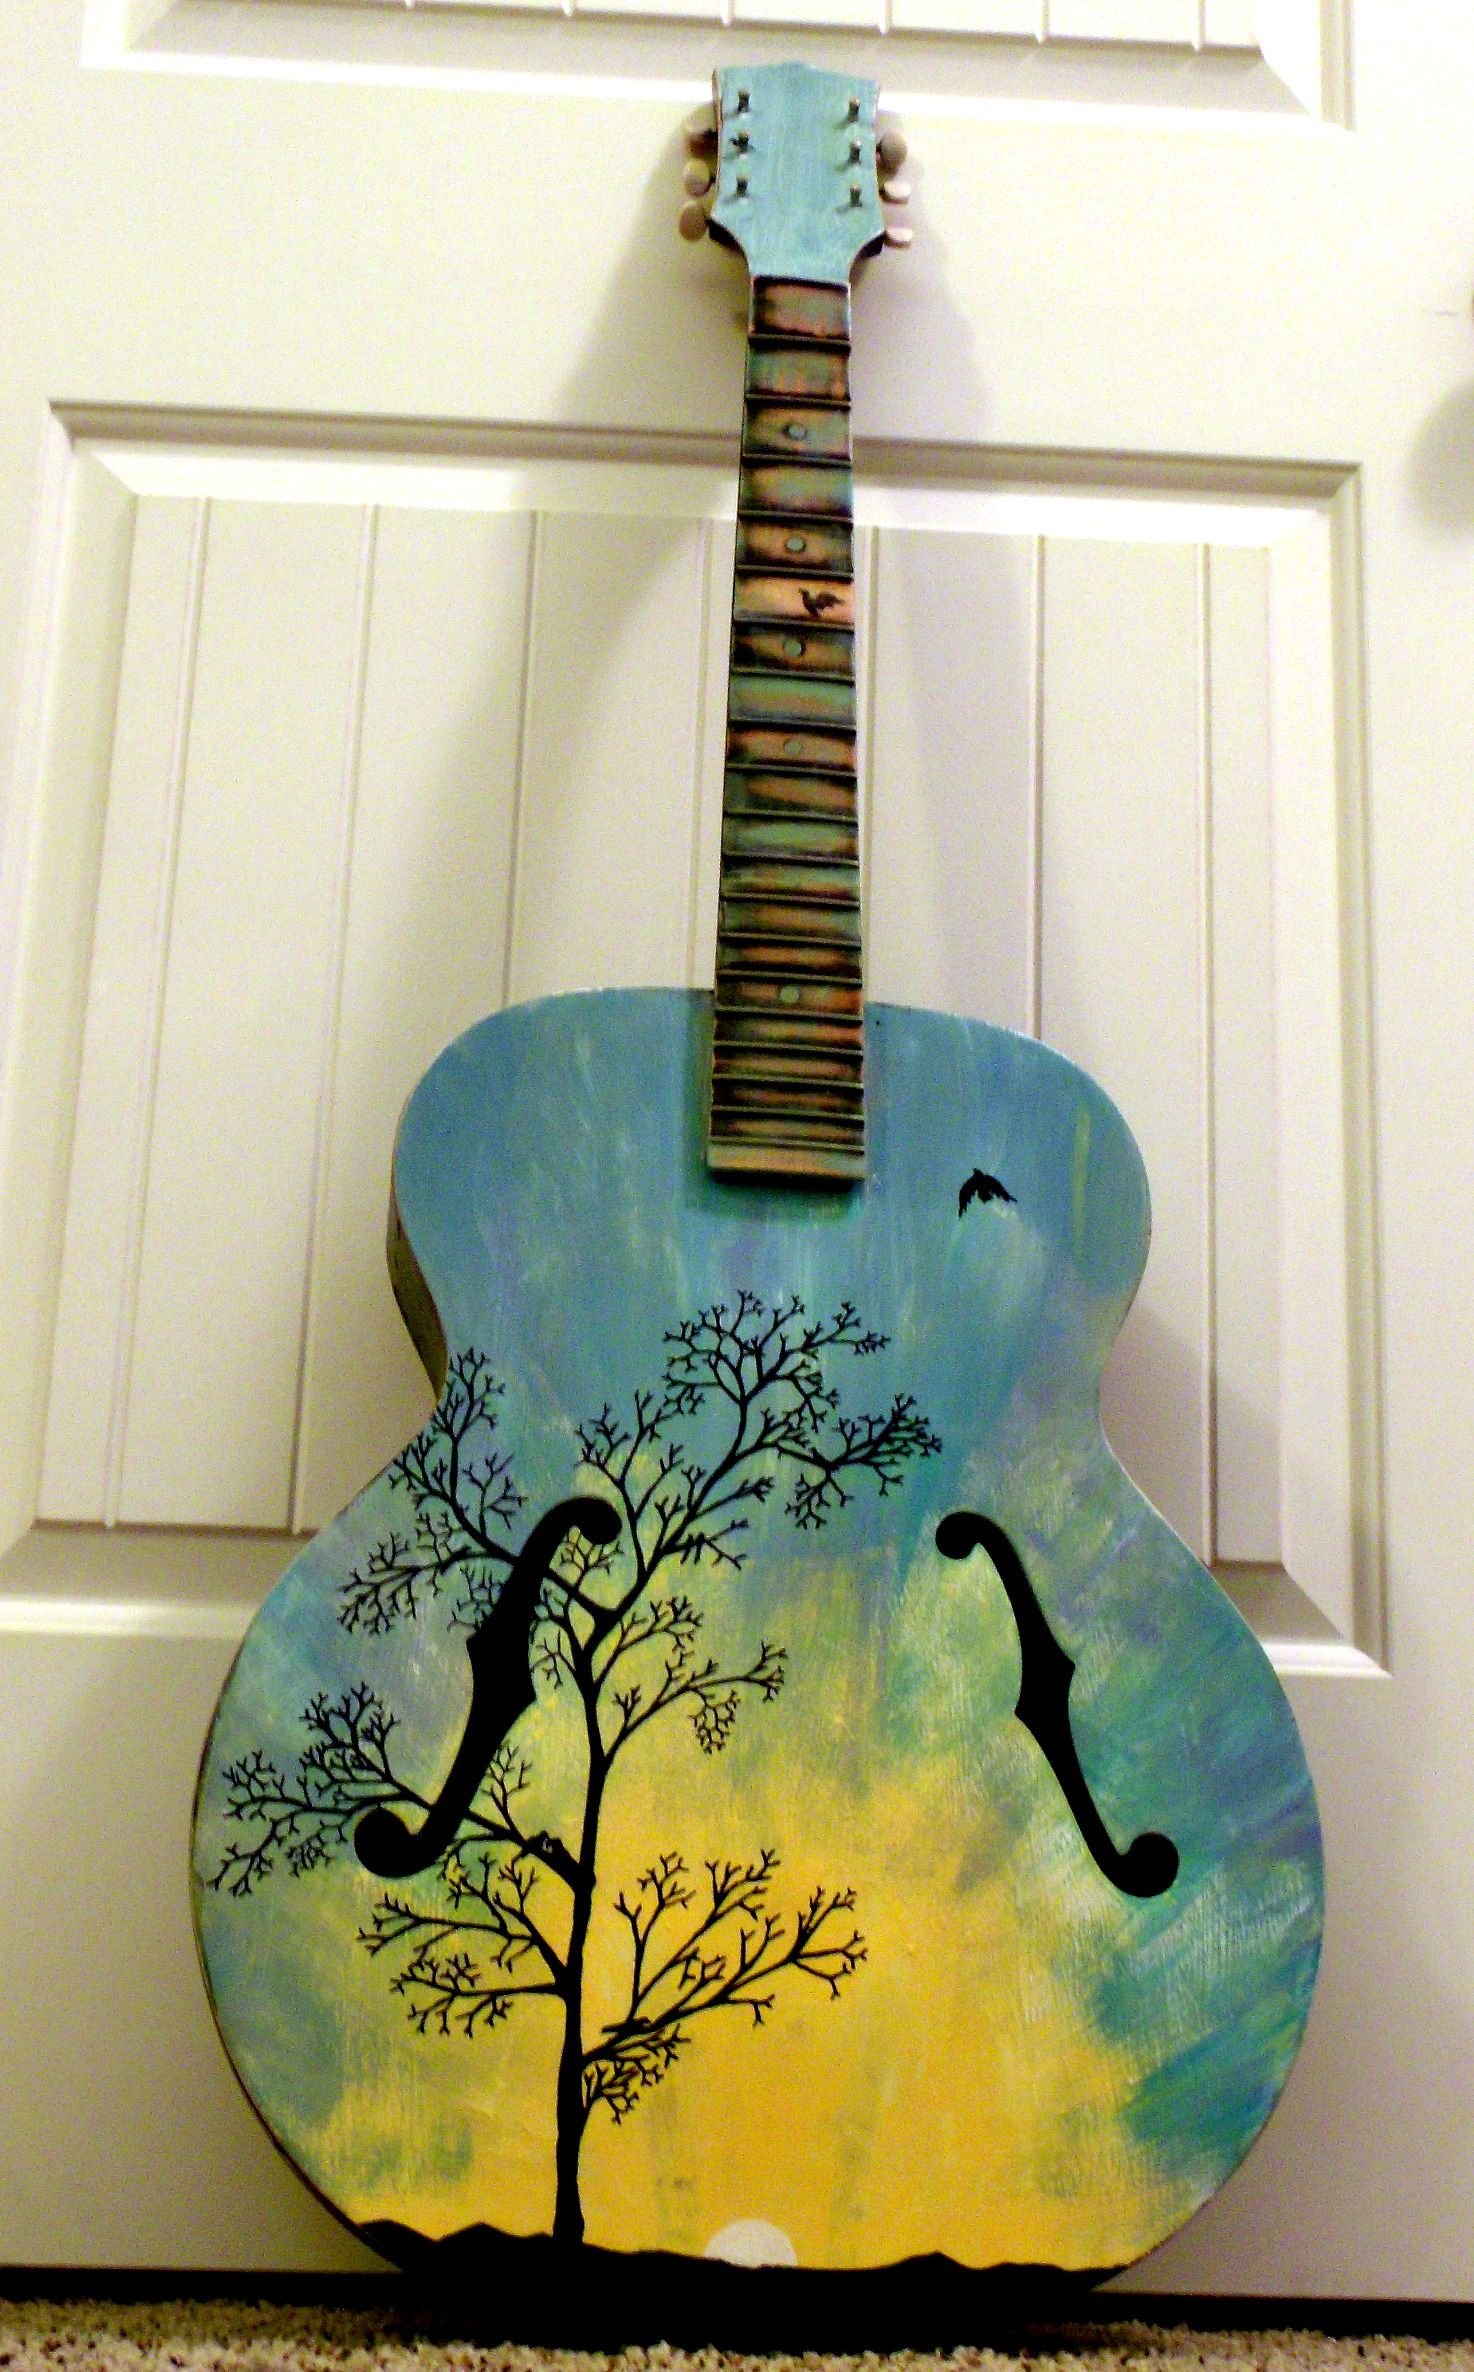 Guitarras Decoradas Just In Case You Wanted To Know Yup I Painted This